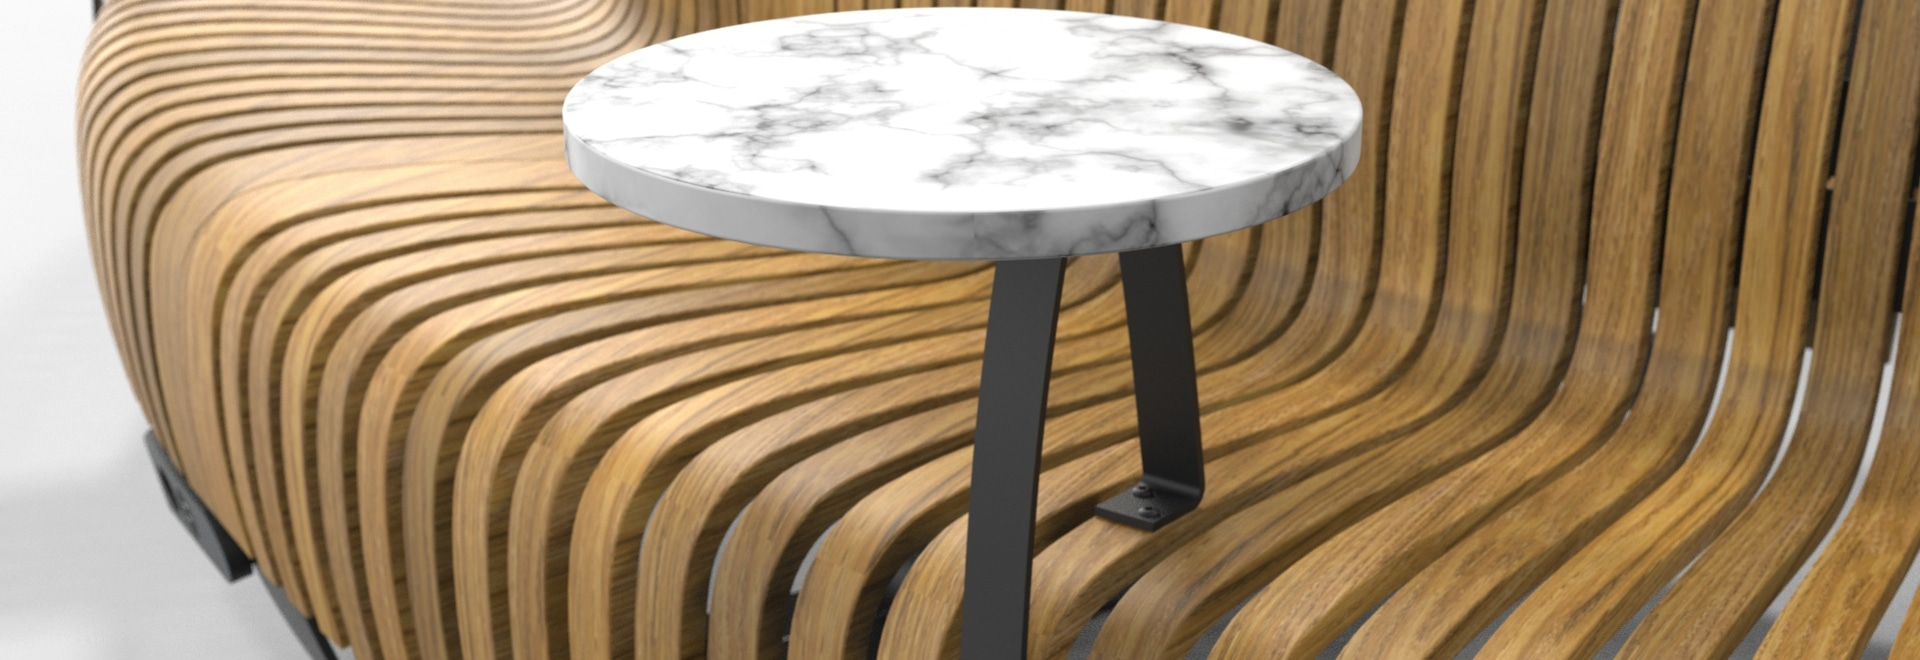 New - Tabletops for Nova C benches